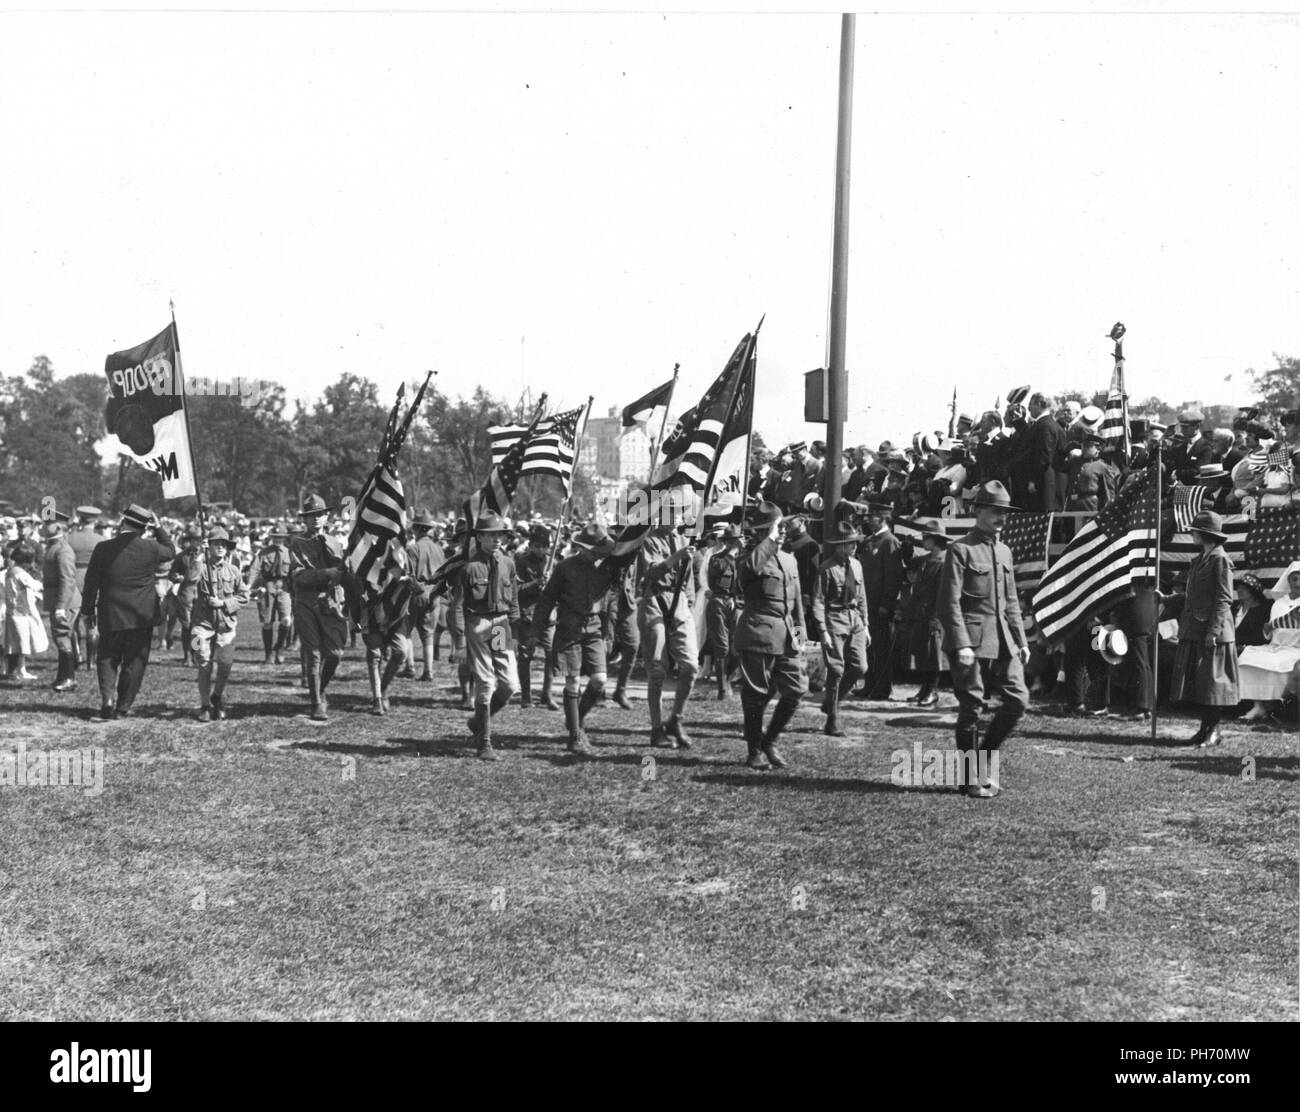 Ceremonies - Flag Day, 1918 - Troop of Boy Scouts passing the flagpole on Flag Day in Central Park, N.Y. City - Stock Image